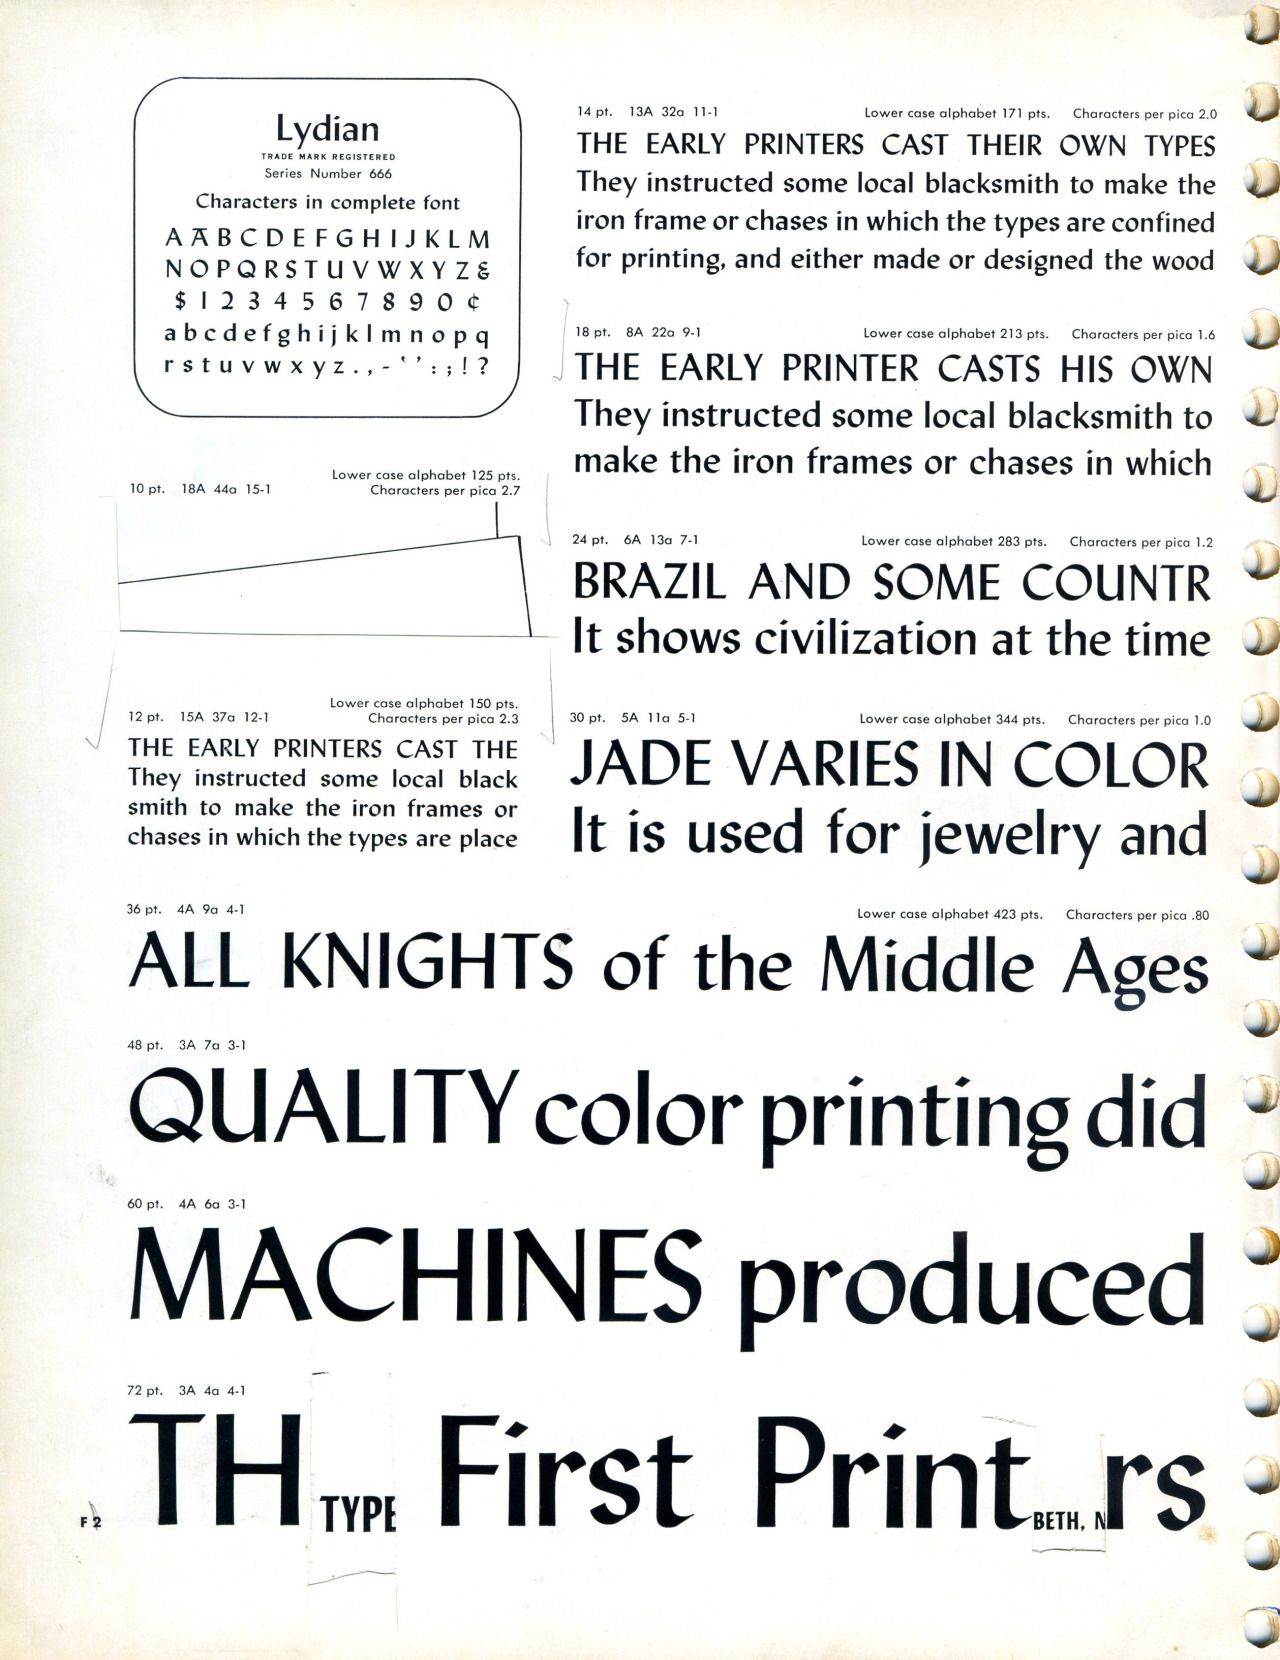 Lydian Is A Classic Typeface By Warren Chappell Chappell Also Designed Some Wonderful American Editions Of Winnie The Pooh This Spec Typeface Design It Cast